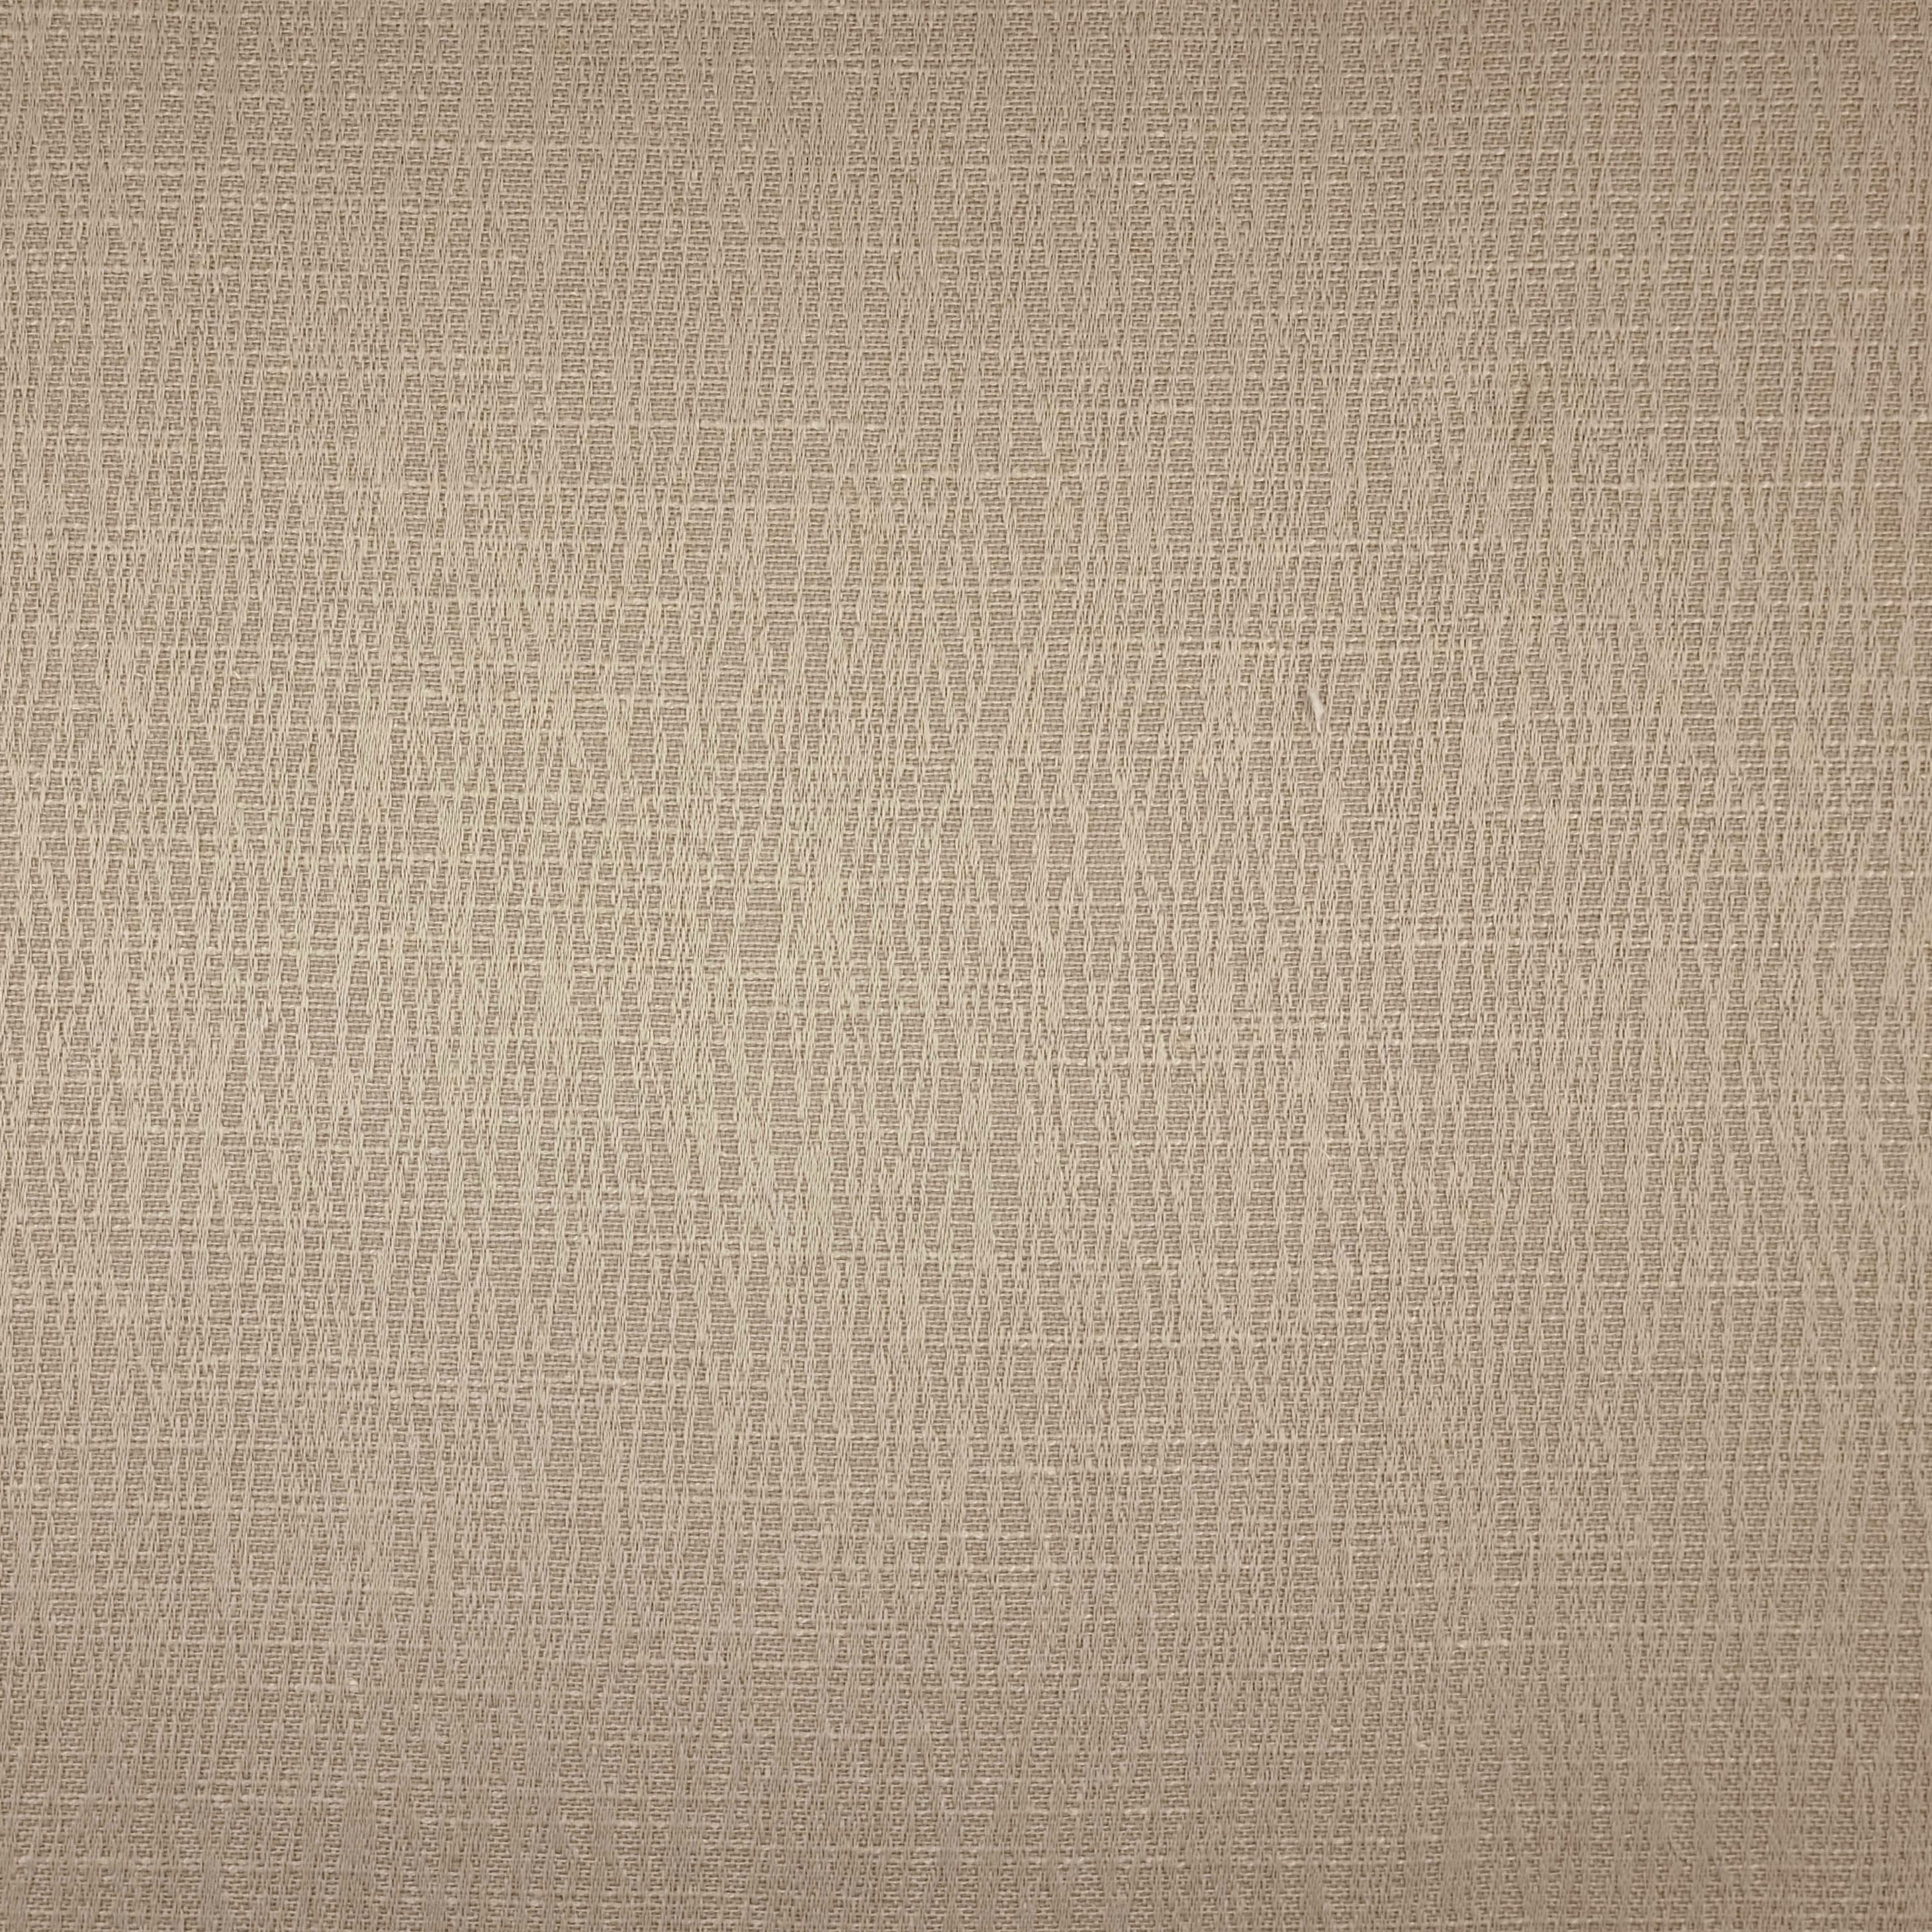 McAlister Textiles Linea Taupe Textured Fabric Fabrics